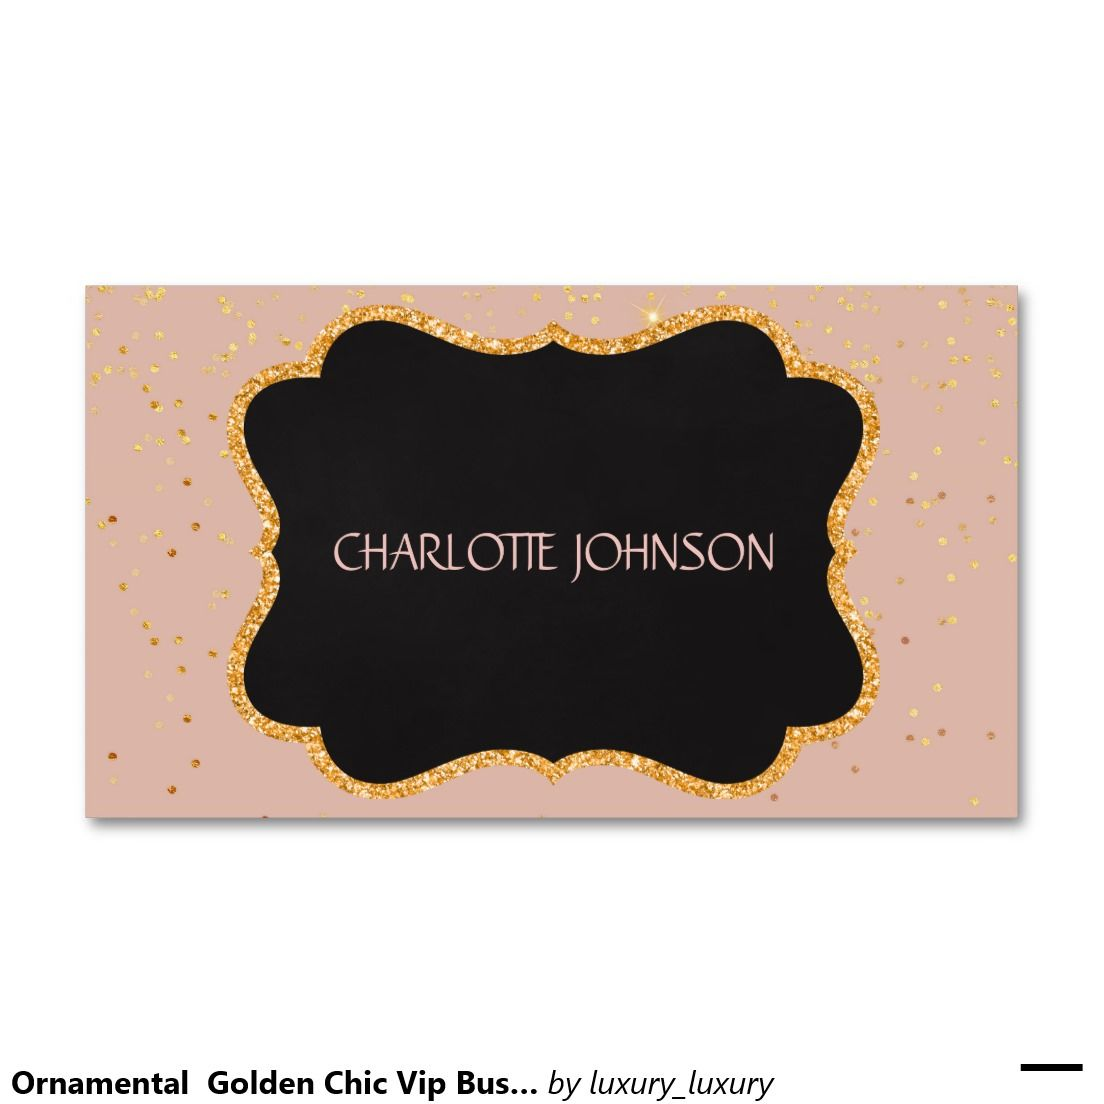 Ornamental Golden Chic Vip Business Card | Business cards, Vip and ...